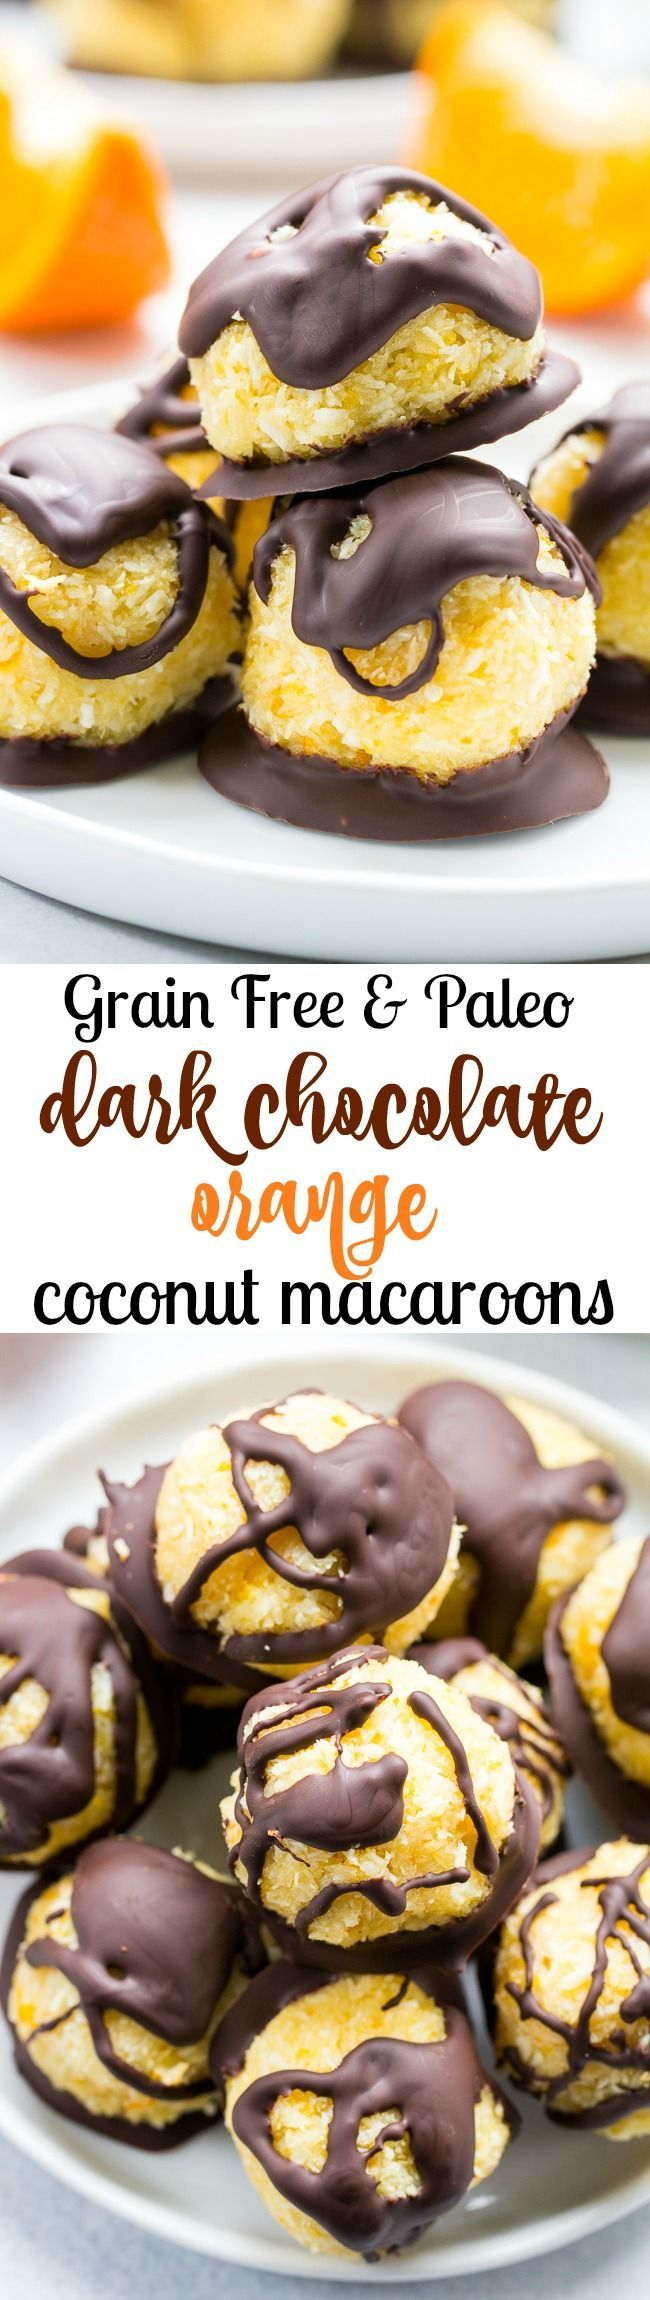 Chewy and sweet orange coconut macaroons are dipped in dark chocolate for a healthy yet decadent tasting dessert! Easy and fun to make, these delicious macaroons are gluten free, dairy free and Paleo.